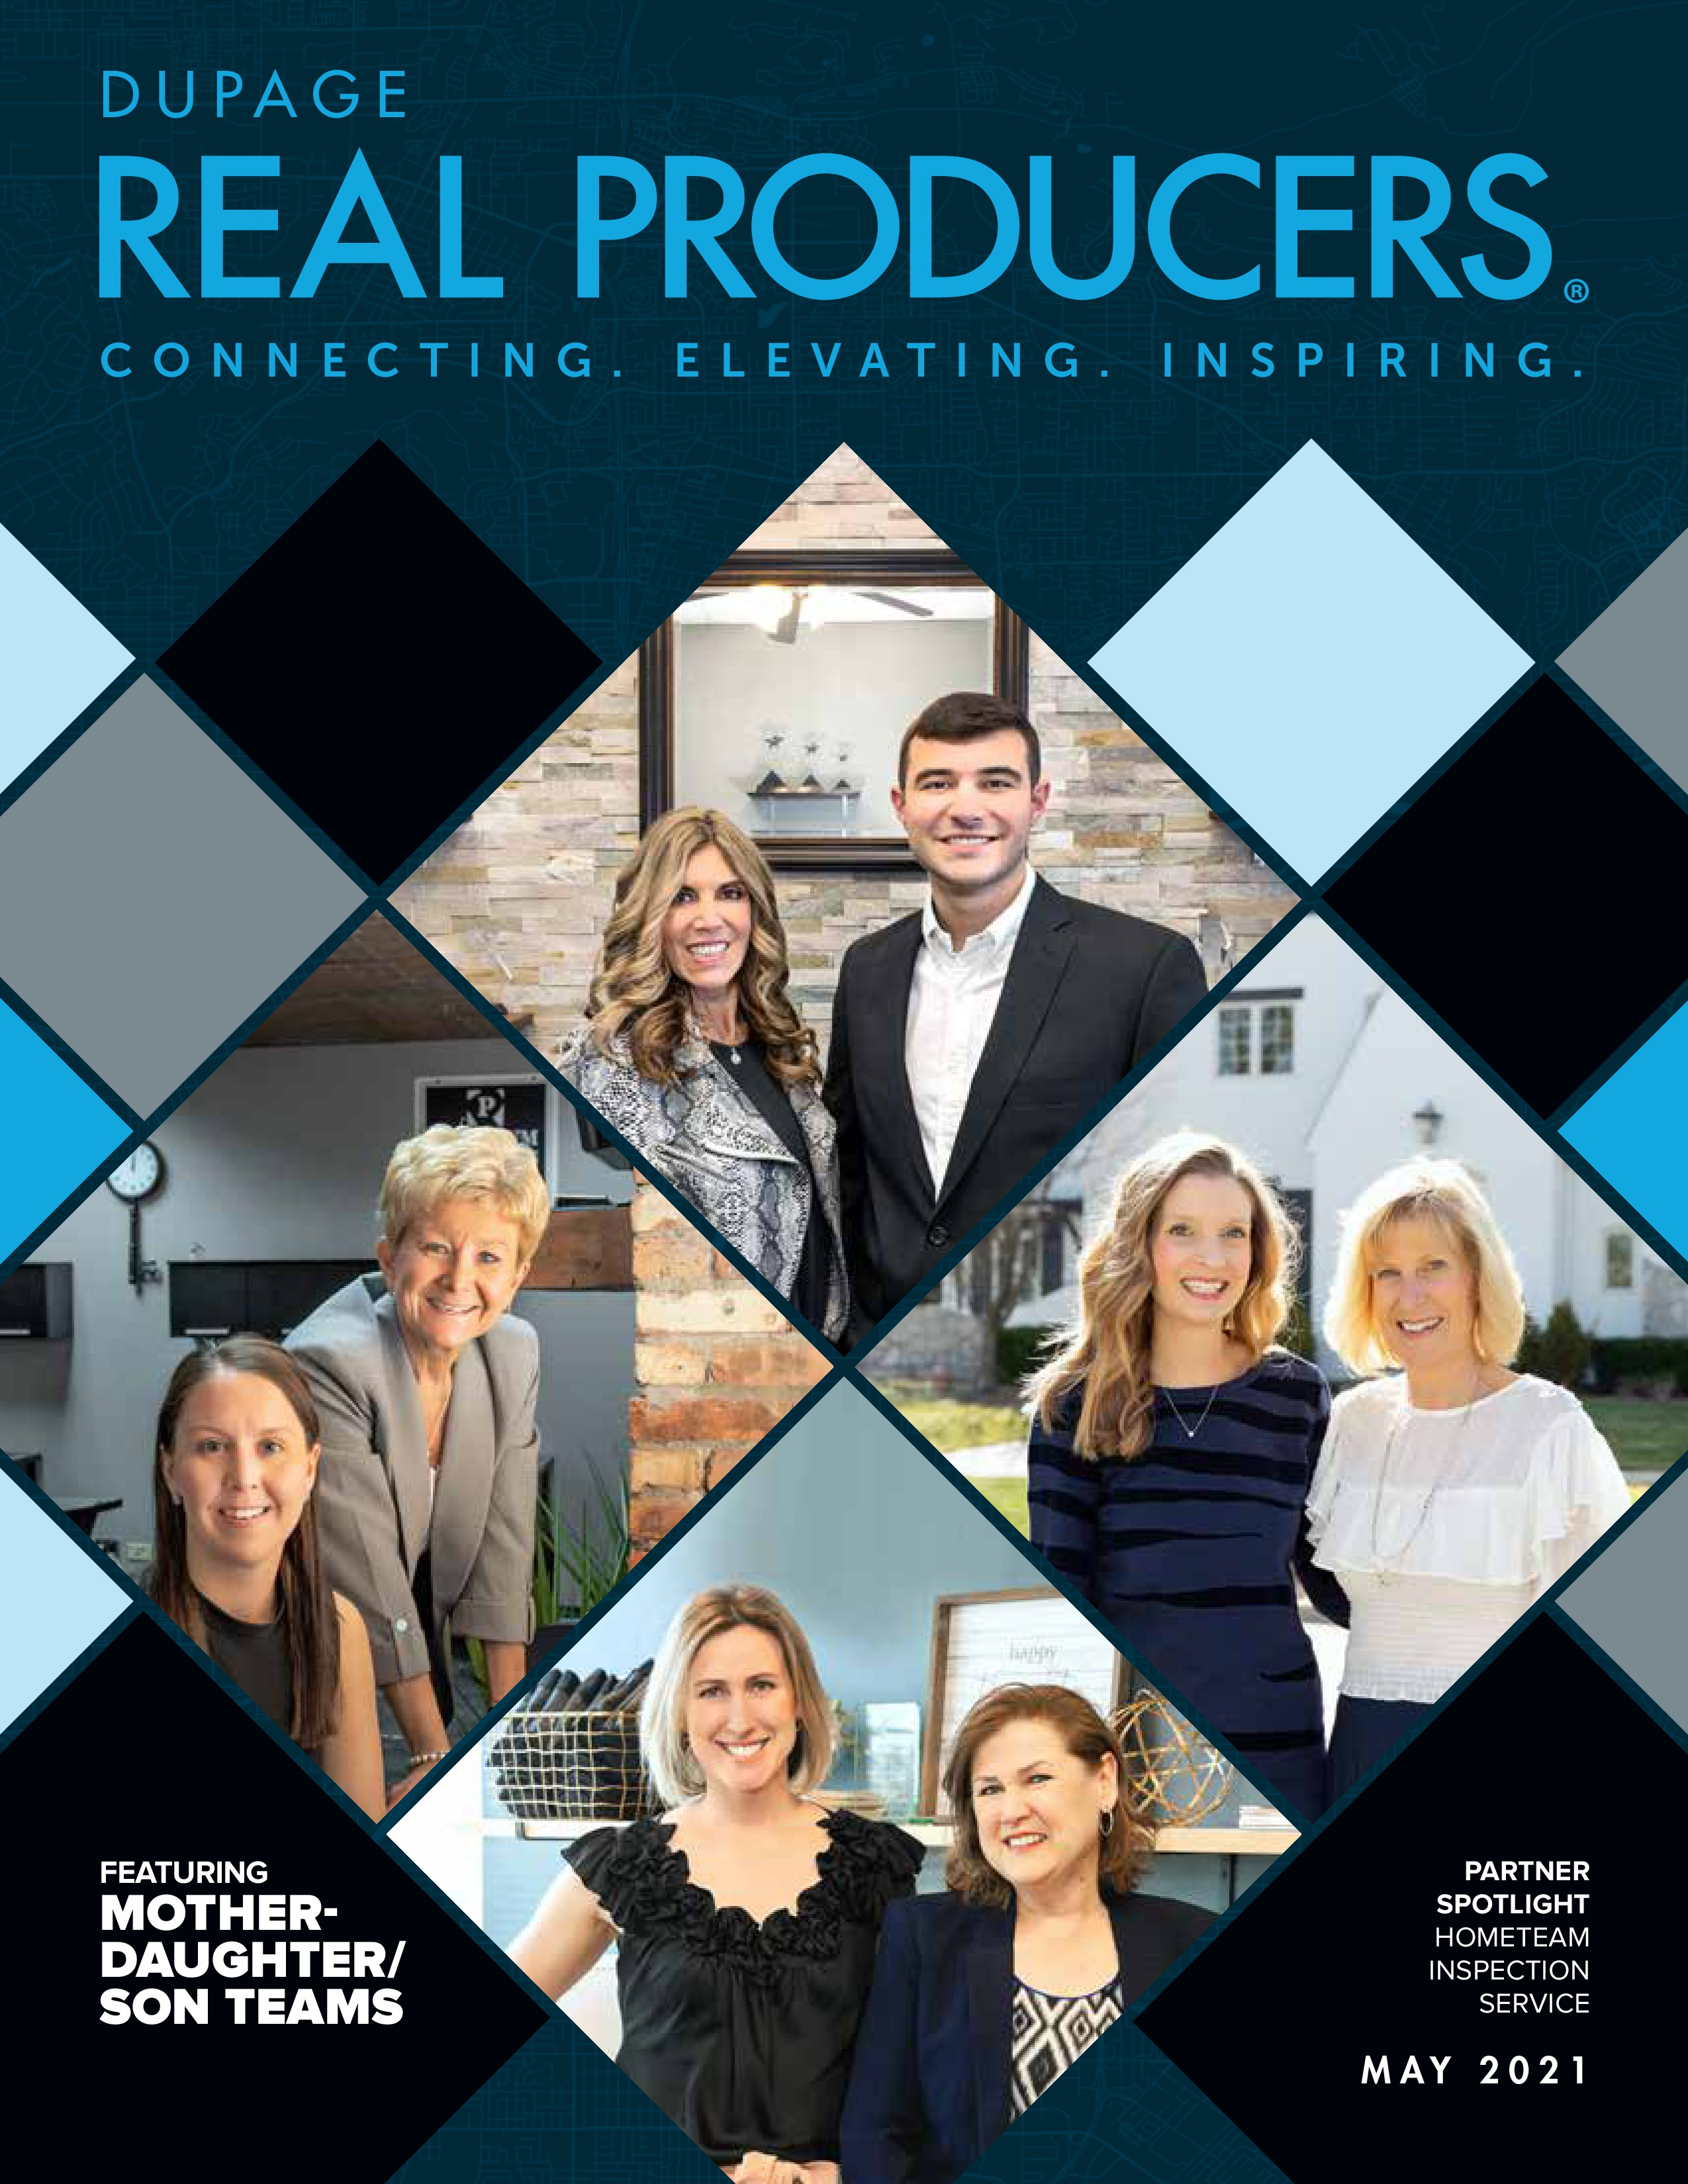 DuPage Co. Real Producers 2021-05-01